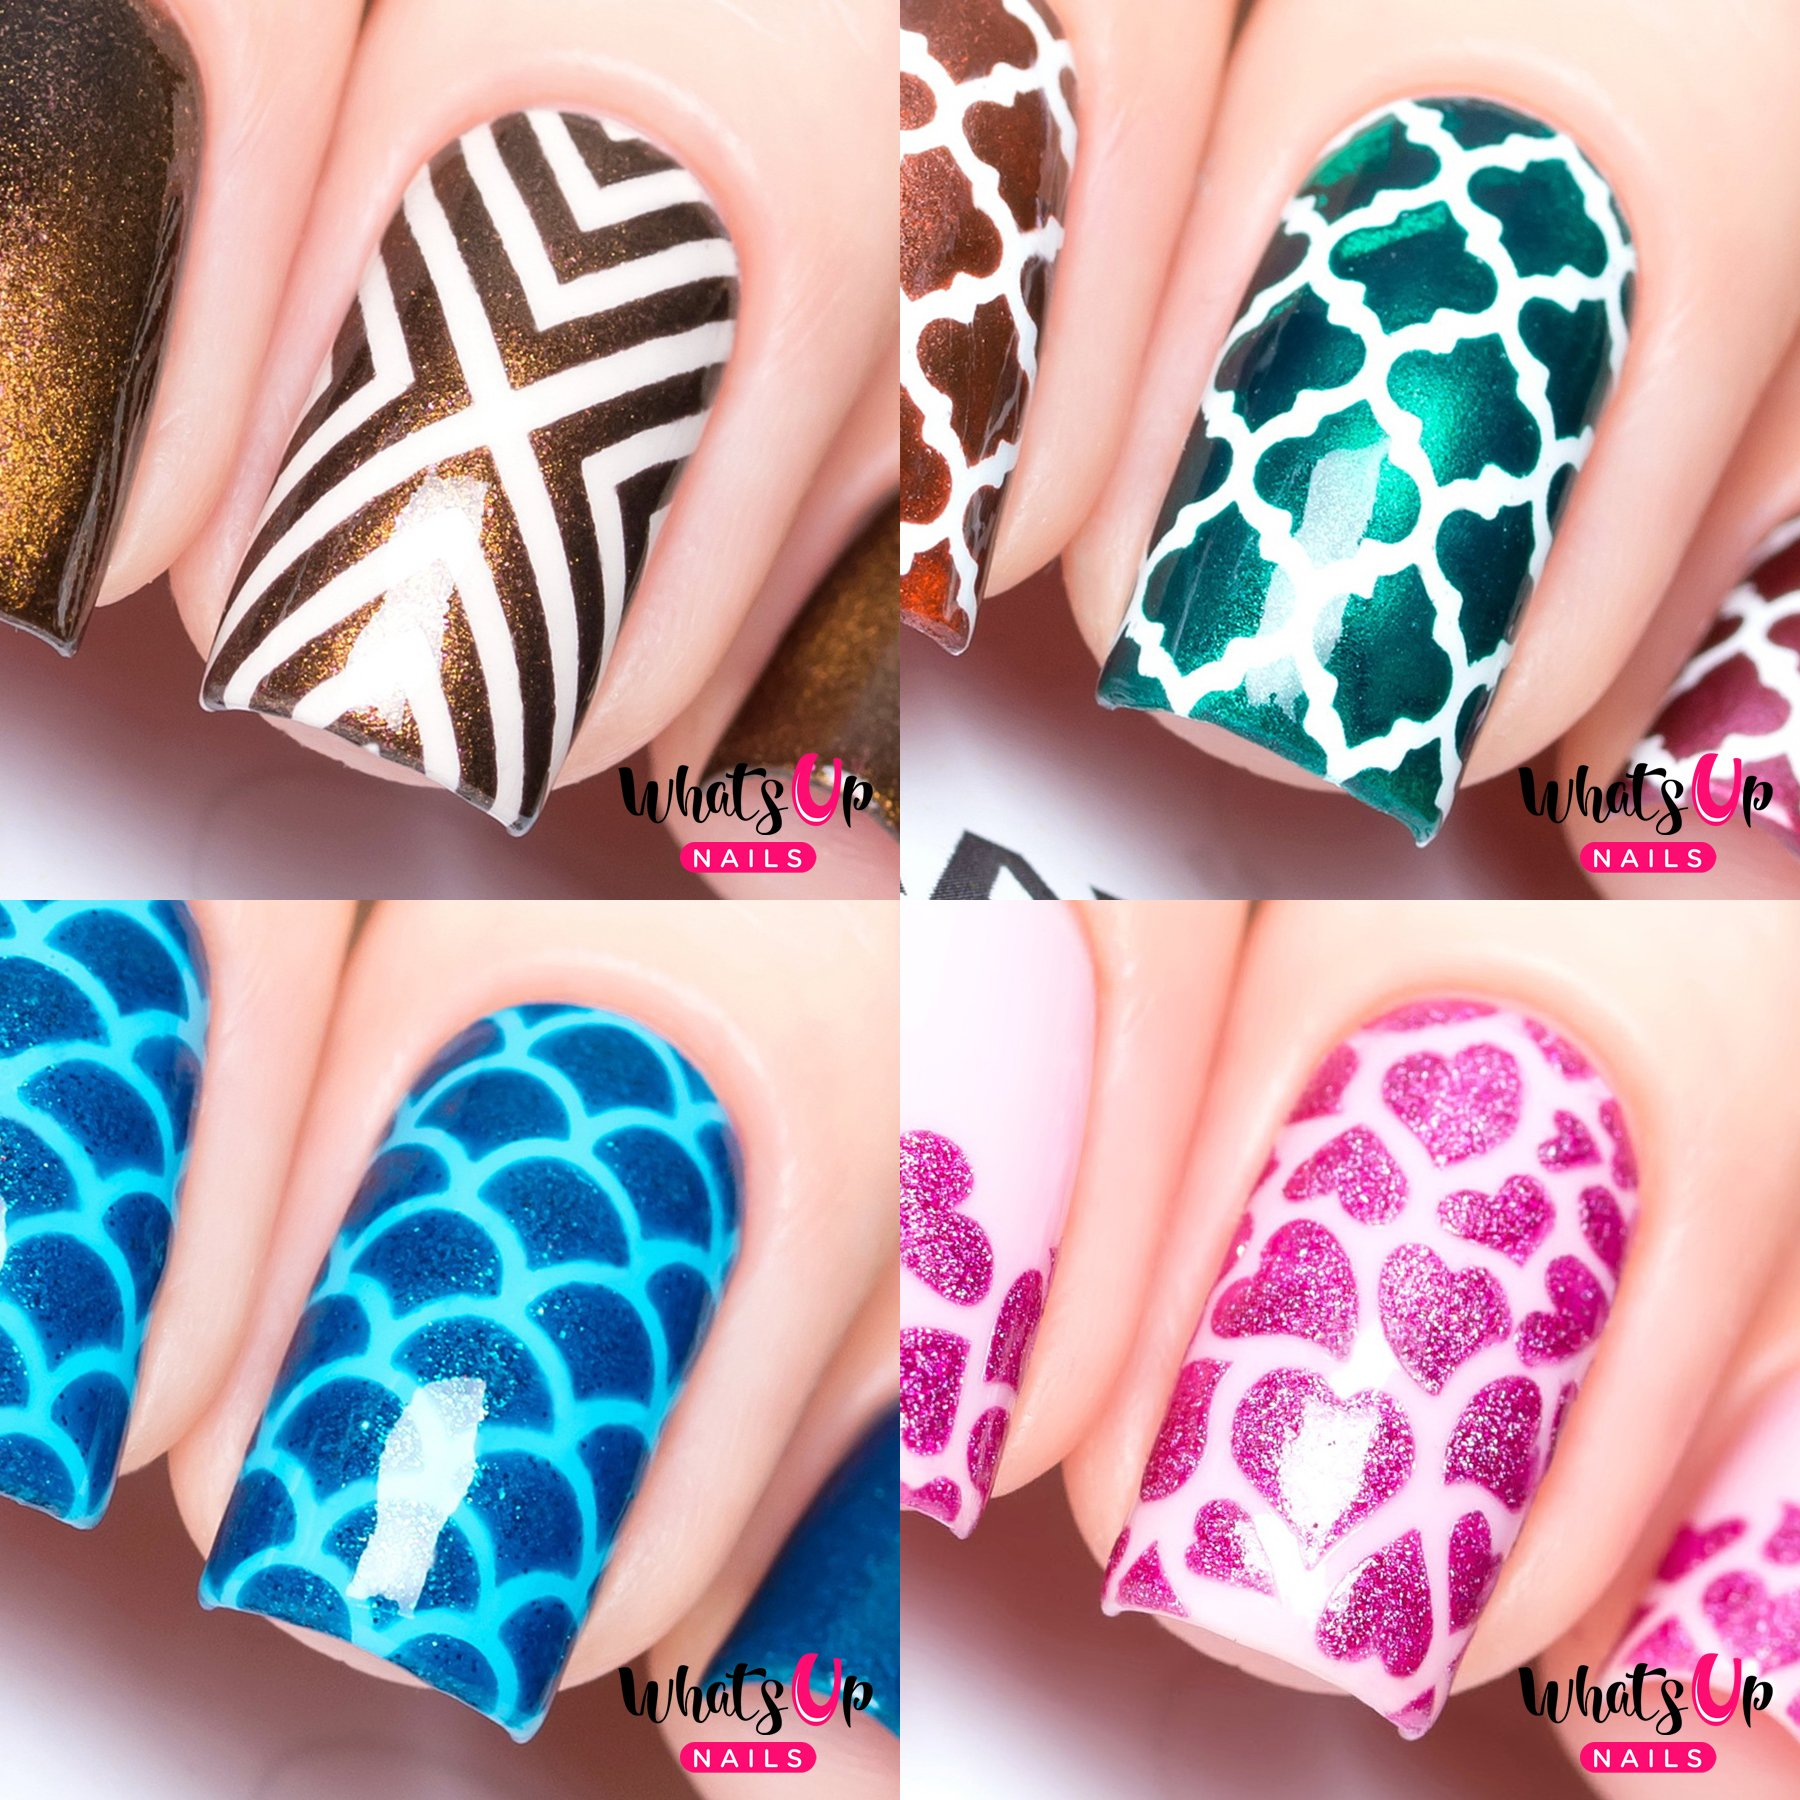 Whats Up Nails - Nail Vinyl Stencils Variety Pack 4pcs (X-pattern, Moroccan, Scales, Hearts) for Nail Art Design by Whats Up Nails